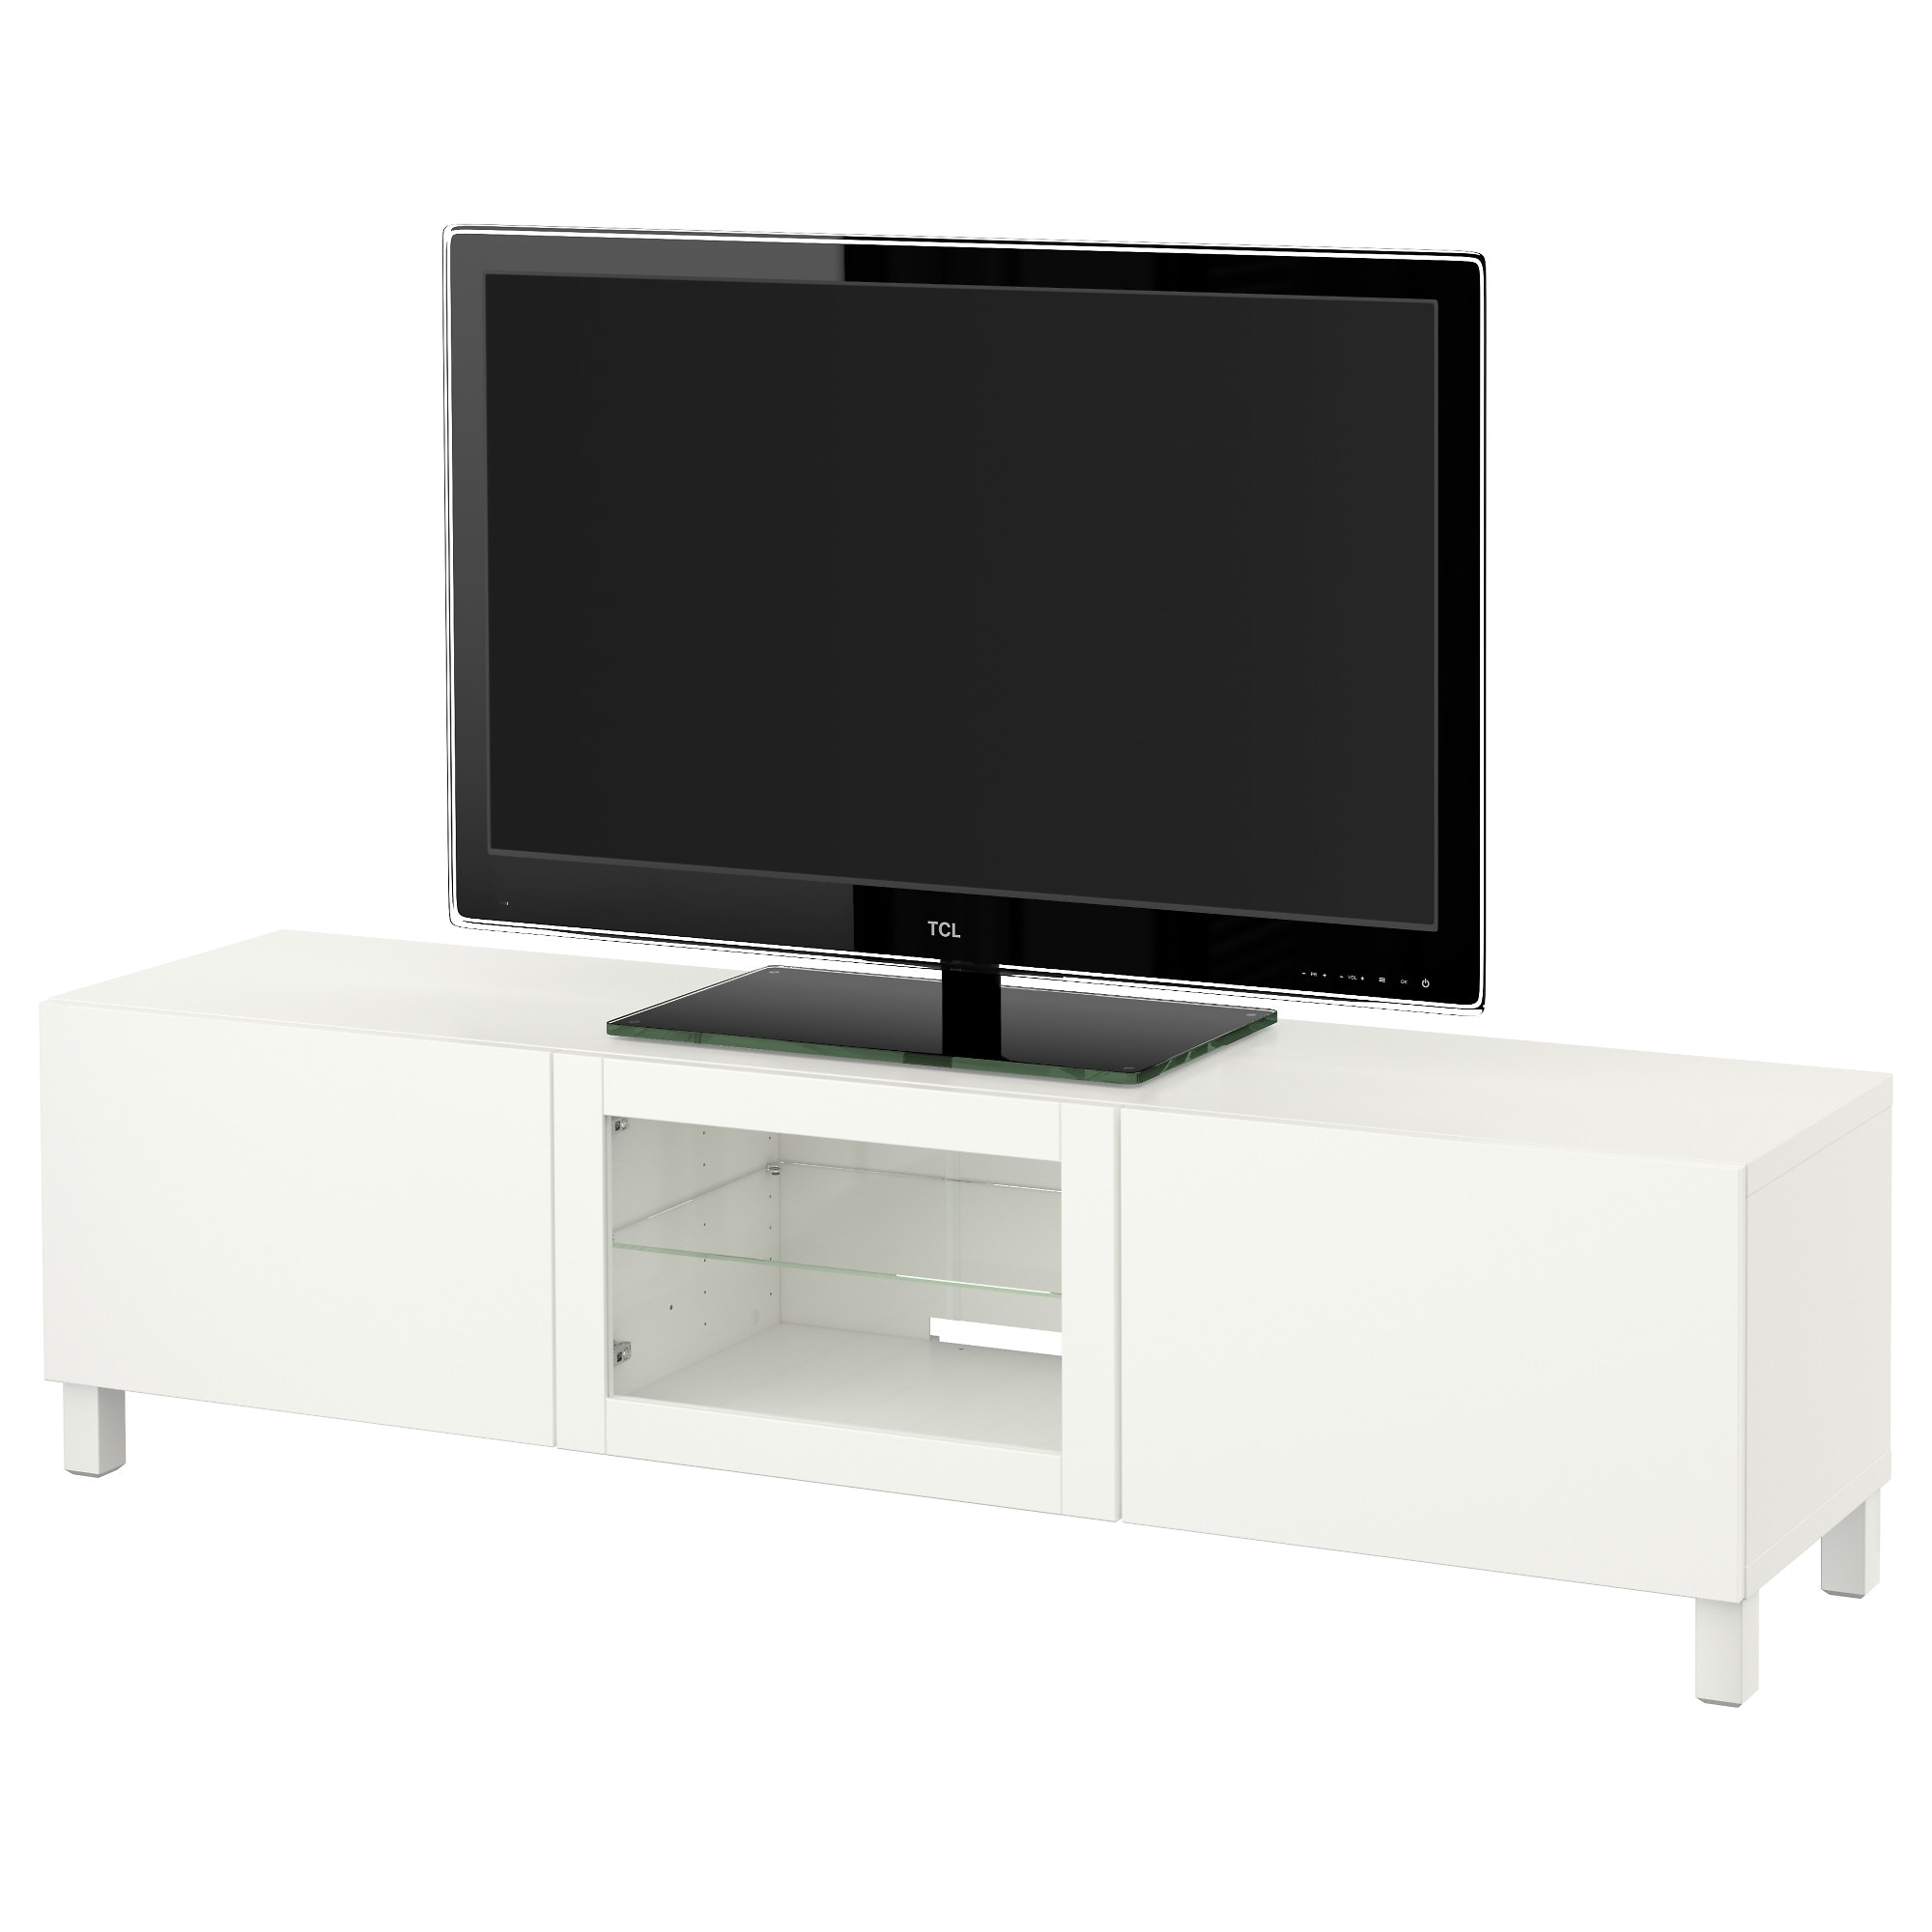 Inspirierend Ikea Billy Tv Lift Ideen